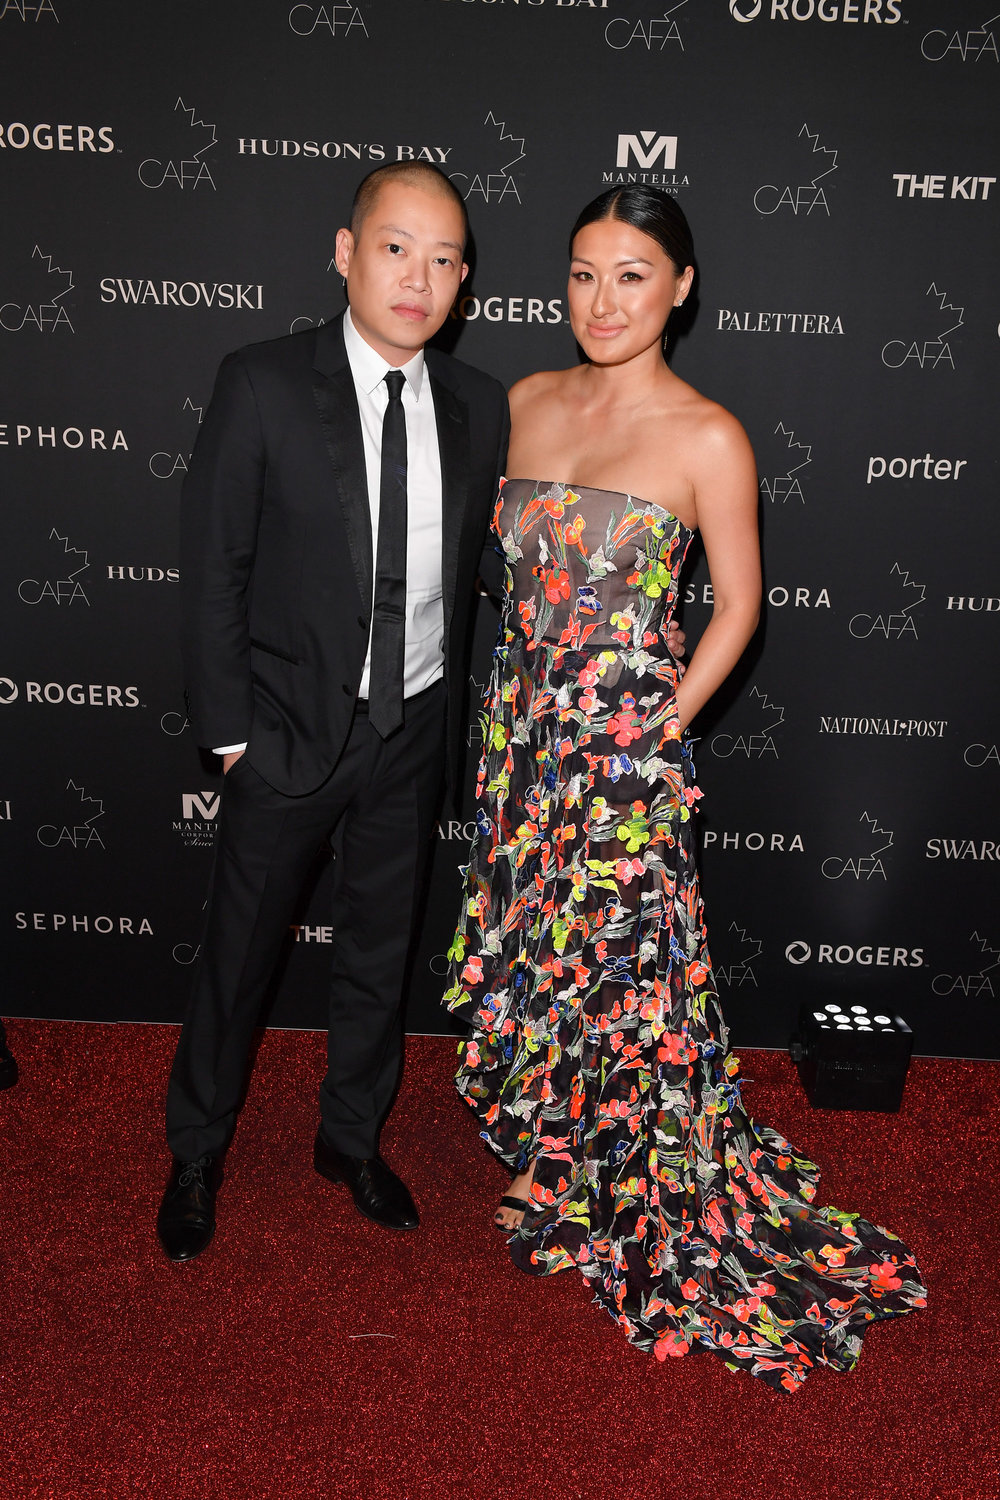 Designer Jason Wu walks the red carpet at the Canadian Arts and Fashion Awards at the Fairmount Royal York in Toronto